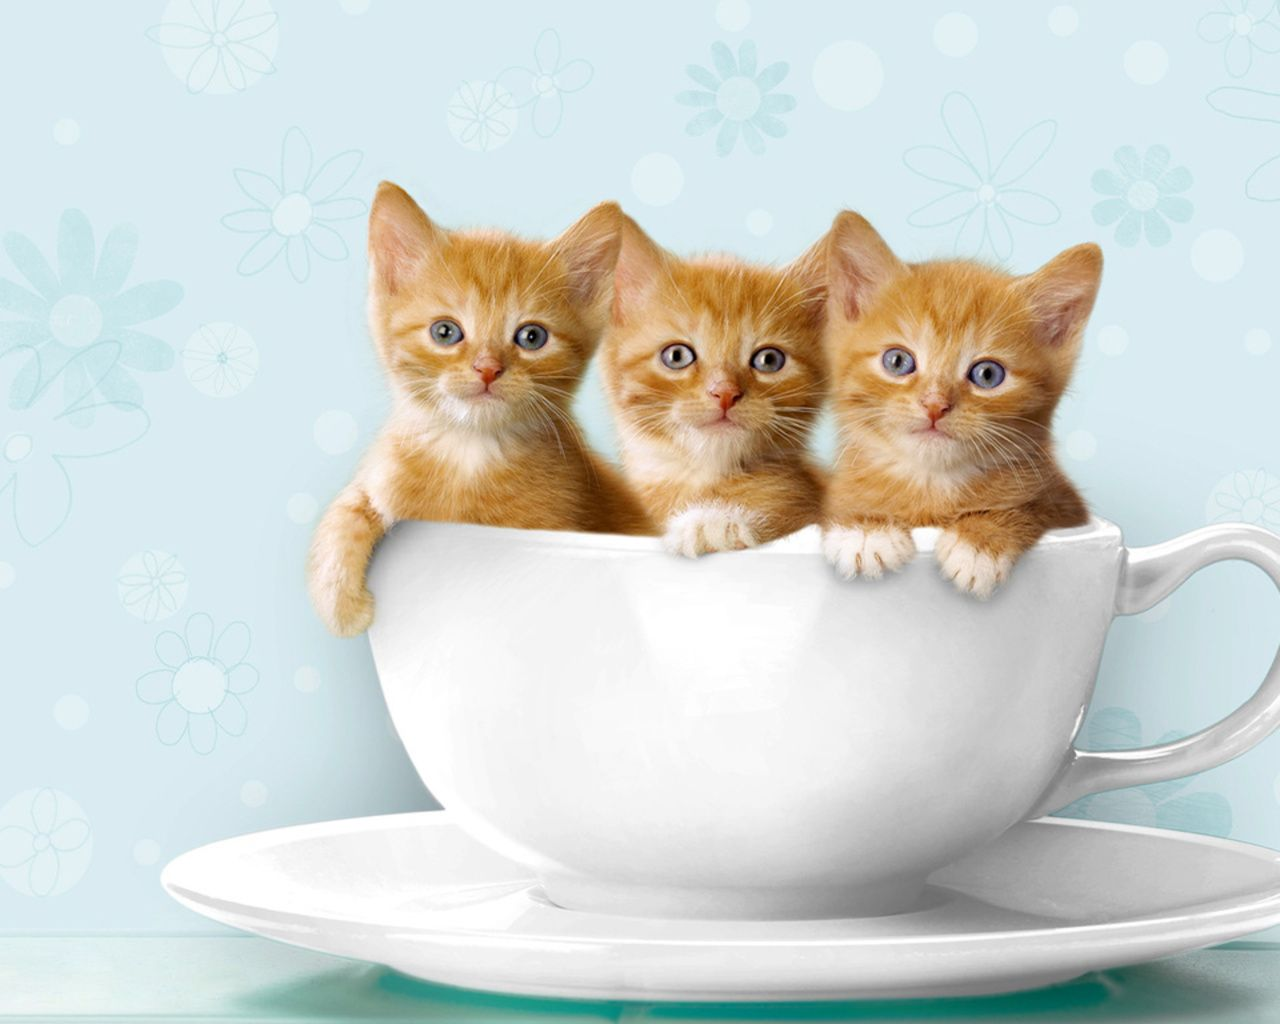 Teacup Kittens Not Really Its Just A Cup For People Who Have Too Much Fun The Night Before